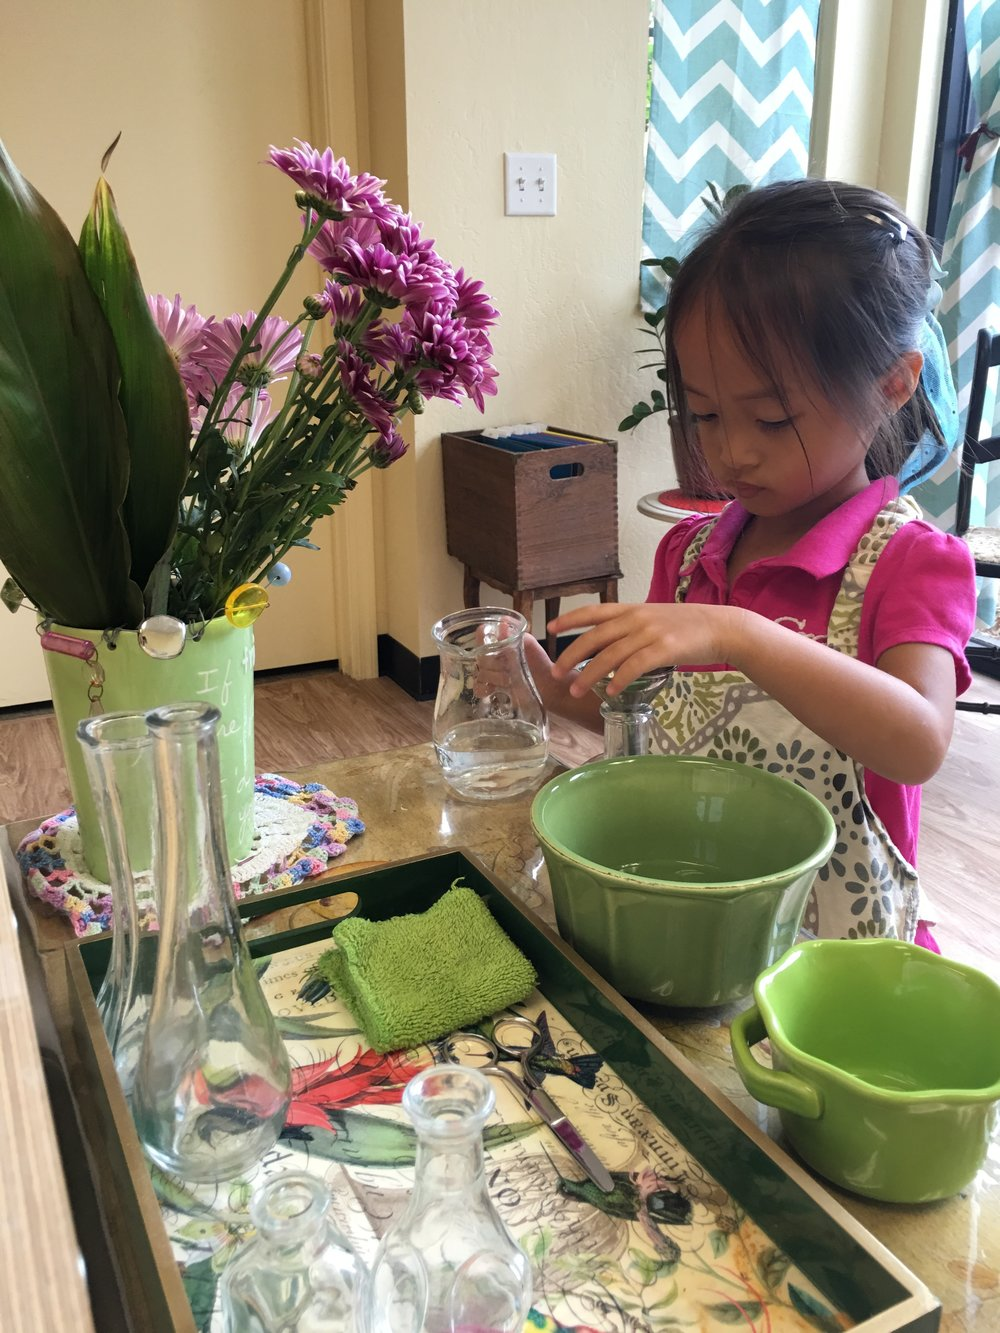 Arranging flowers helps to beautify the environment